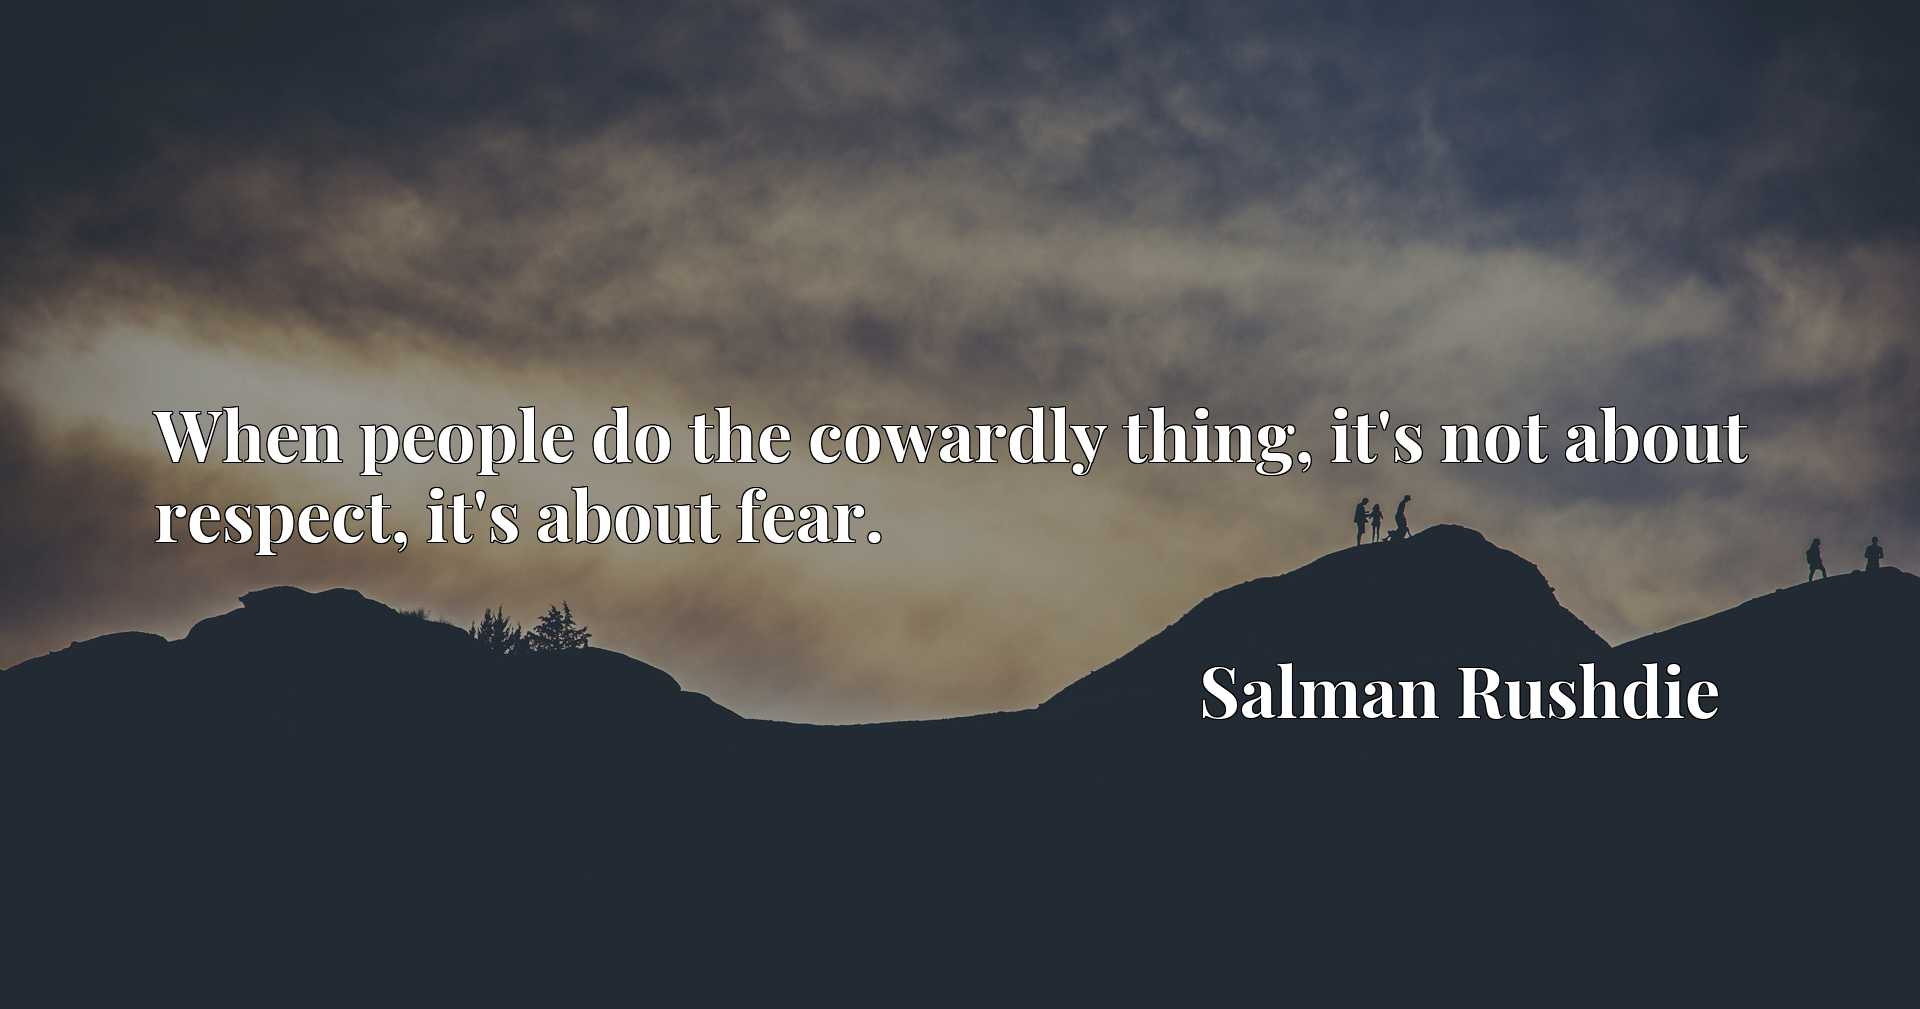 Quote Picture :When people do the cowardly thing, it's not about respect, it's about fear.